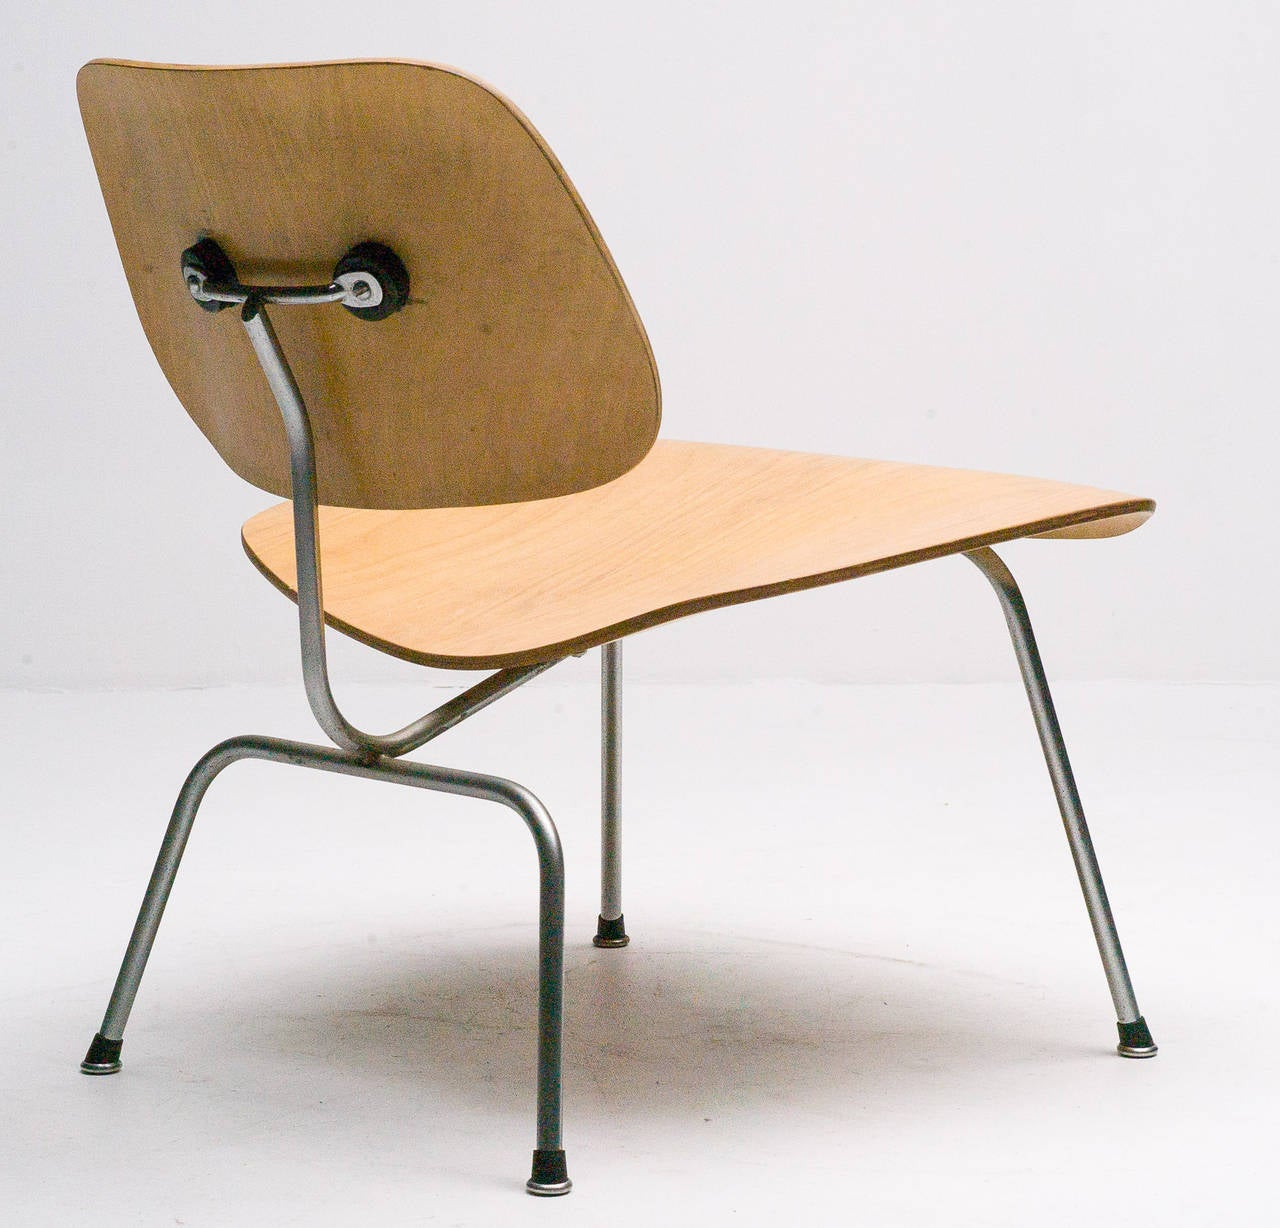 1949 original charles eames lcm in birch chair for sale at 1stdibs. Black Bedroom Furniture Sets. Home Design Ideas